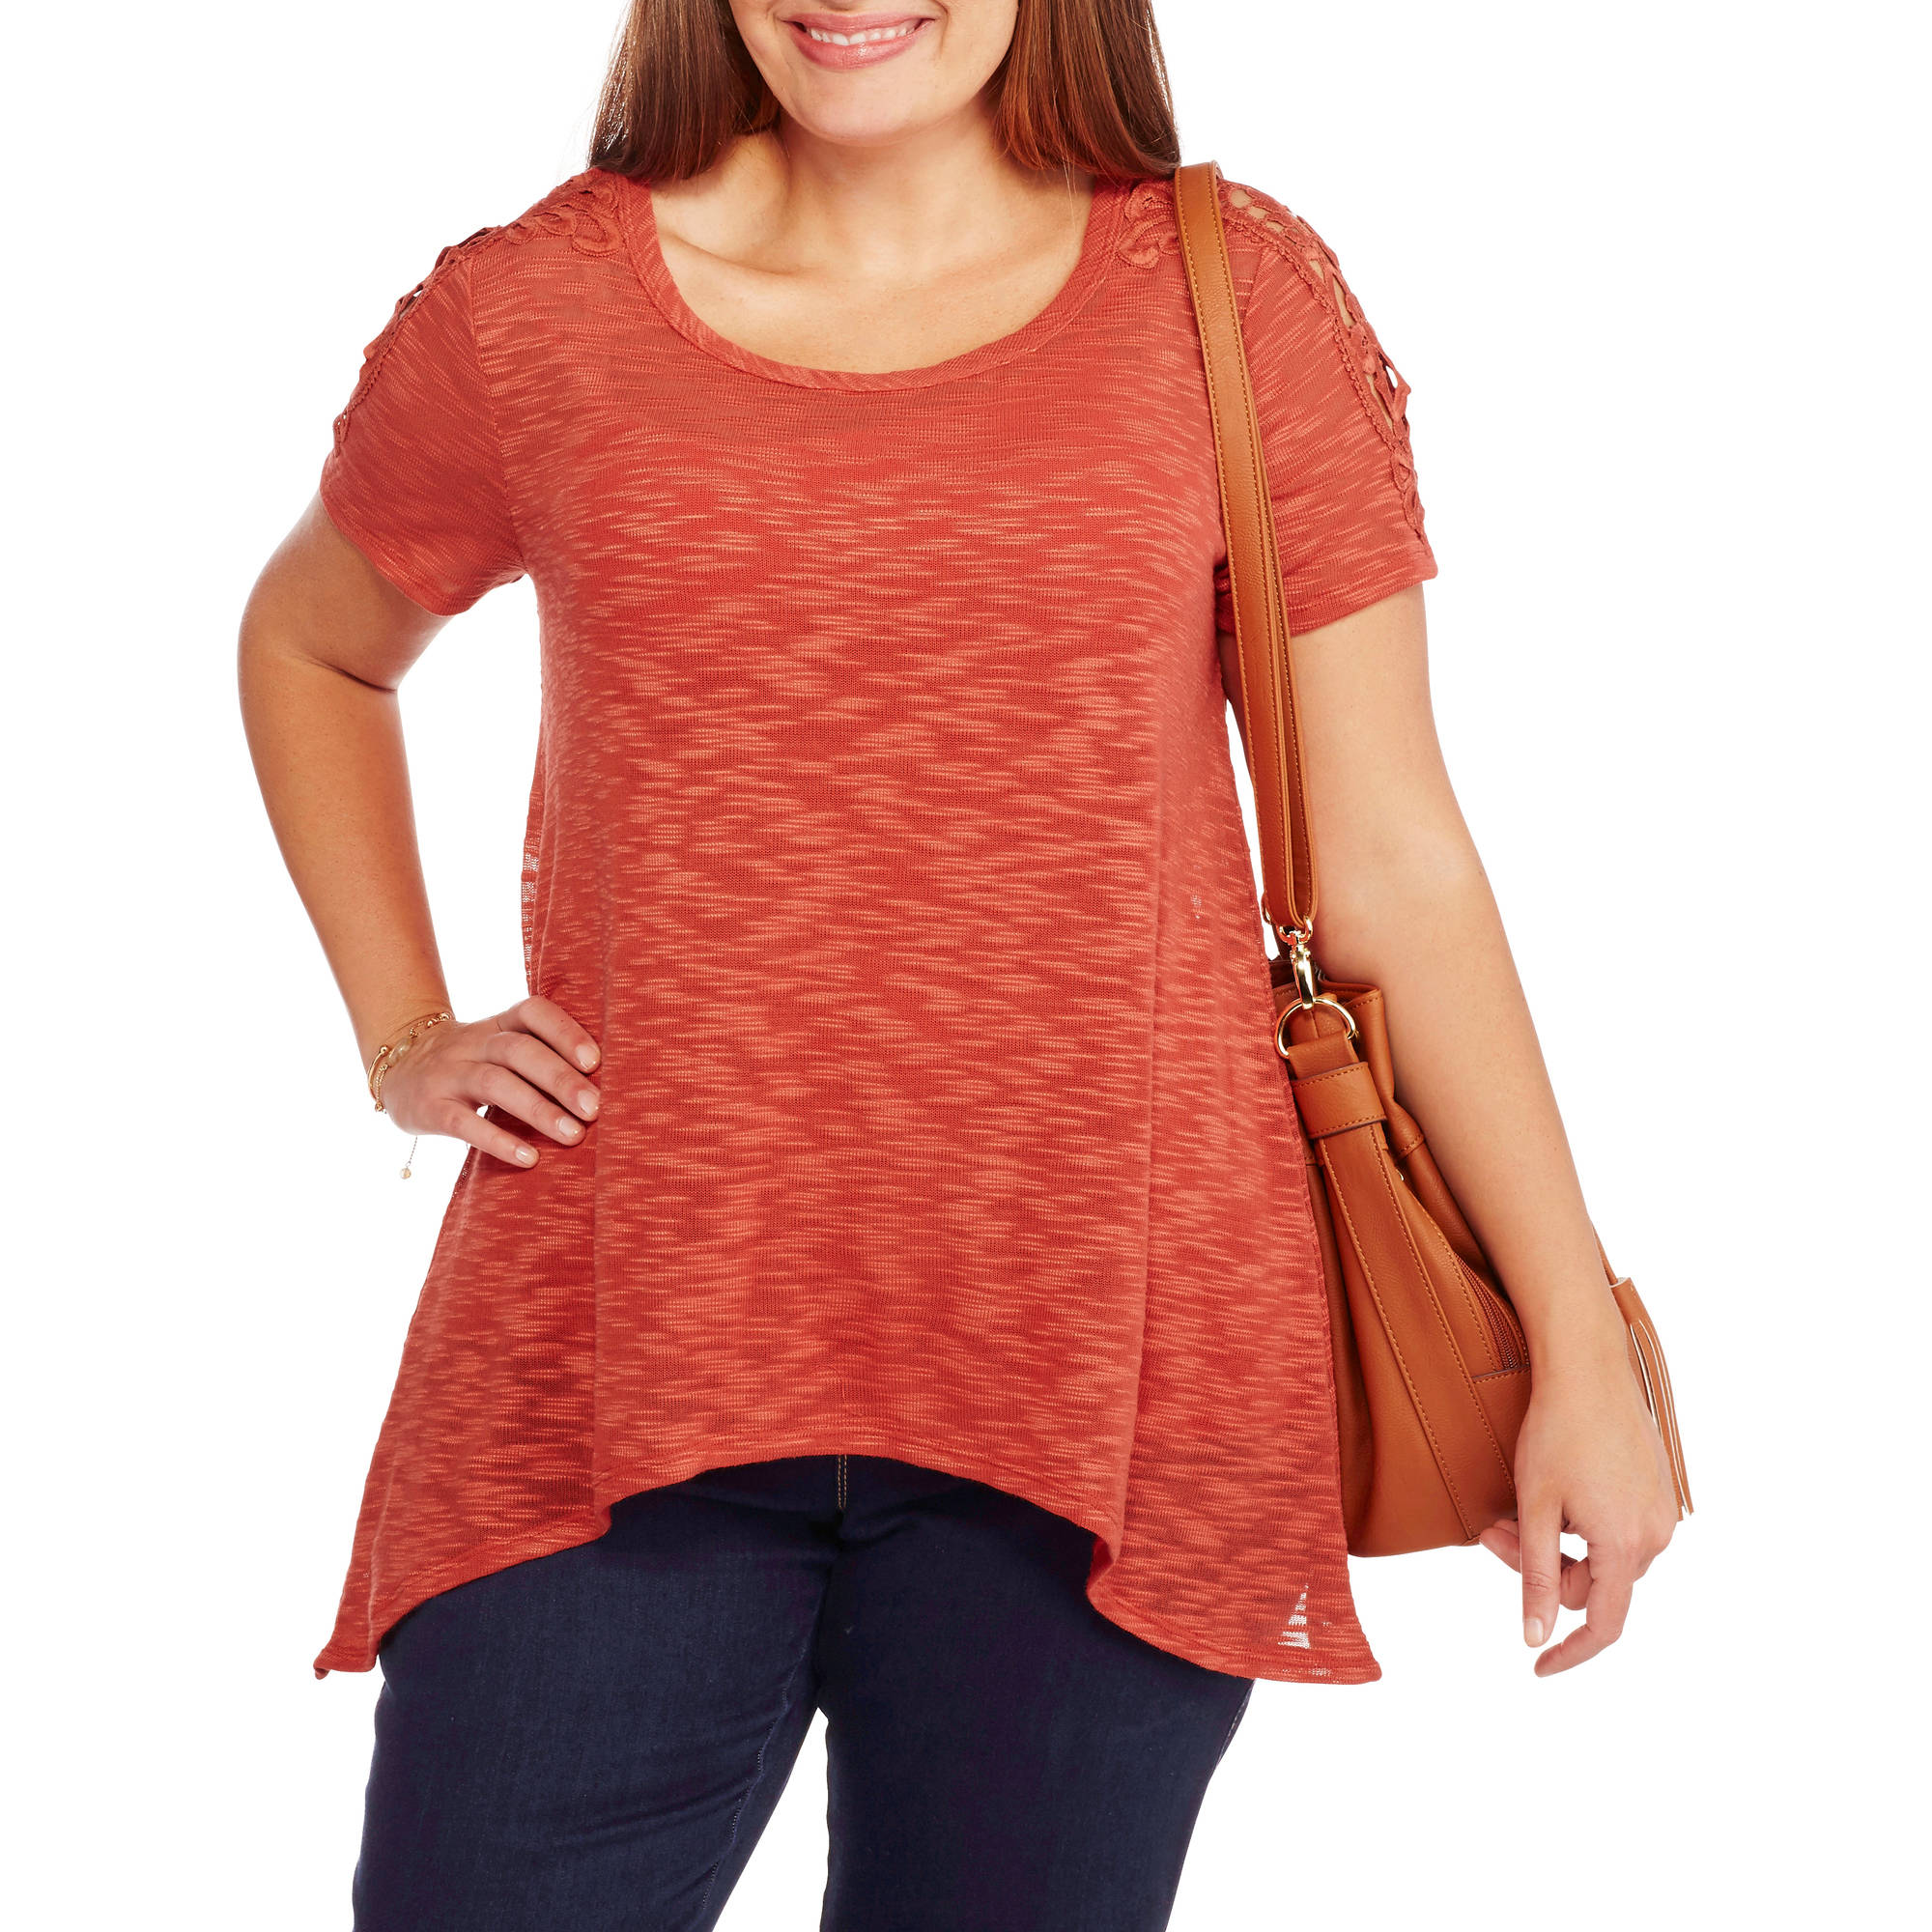 Image of Absolutely Famous Women's Plus Short Sleeve Knit Top with Sharkbite Hem and Medallion Lace Trim